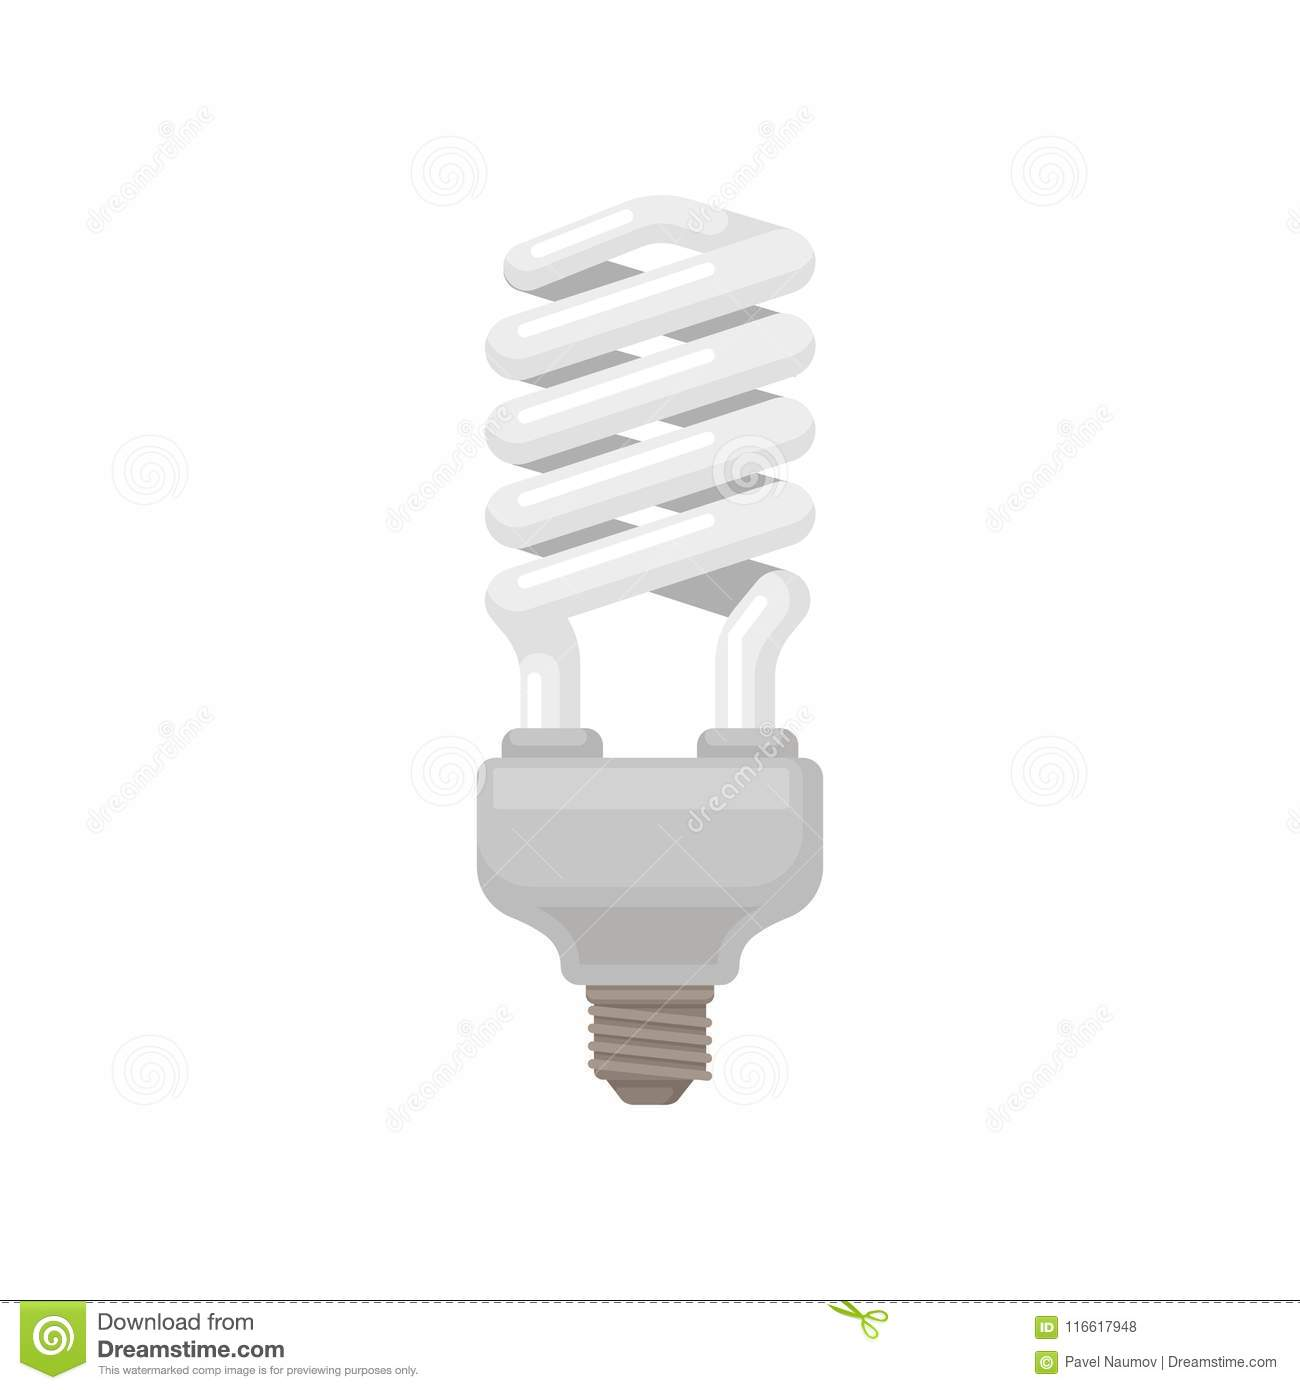 Spiral-shaped compact fluorescent lamp. Energy-saving light bulb. Flat vector element for infographic, promo poster or